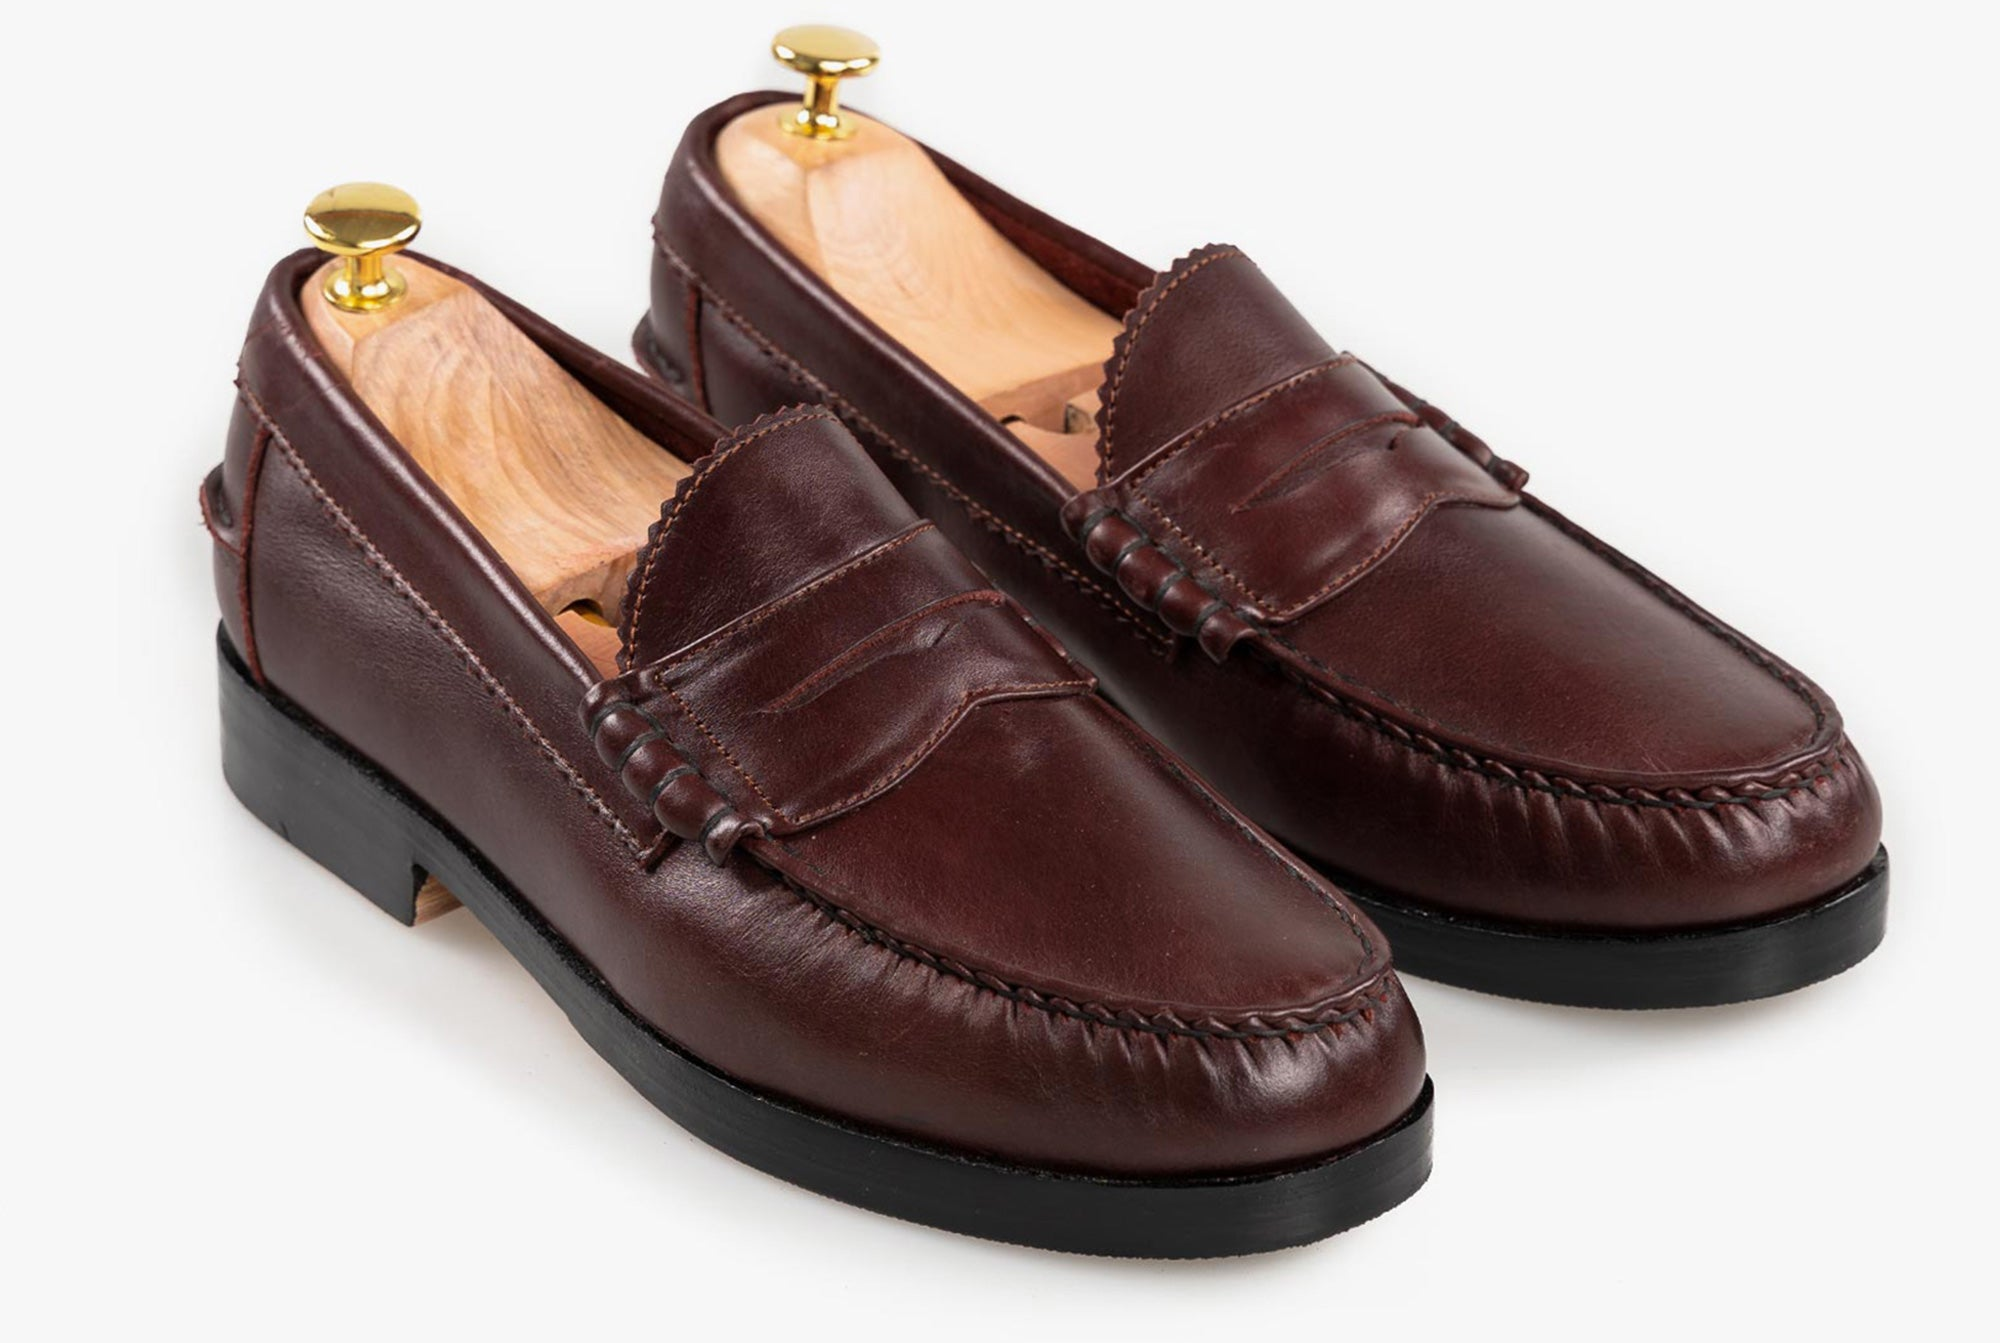 The Grand Penny Loafers - Oxblood Burgundy - Marquina Shoemaker